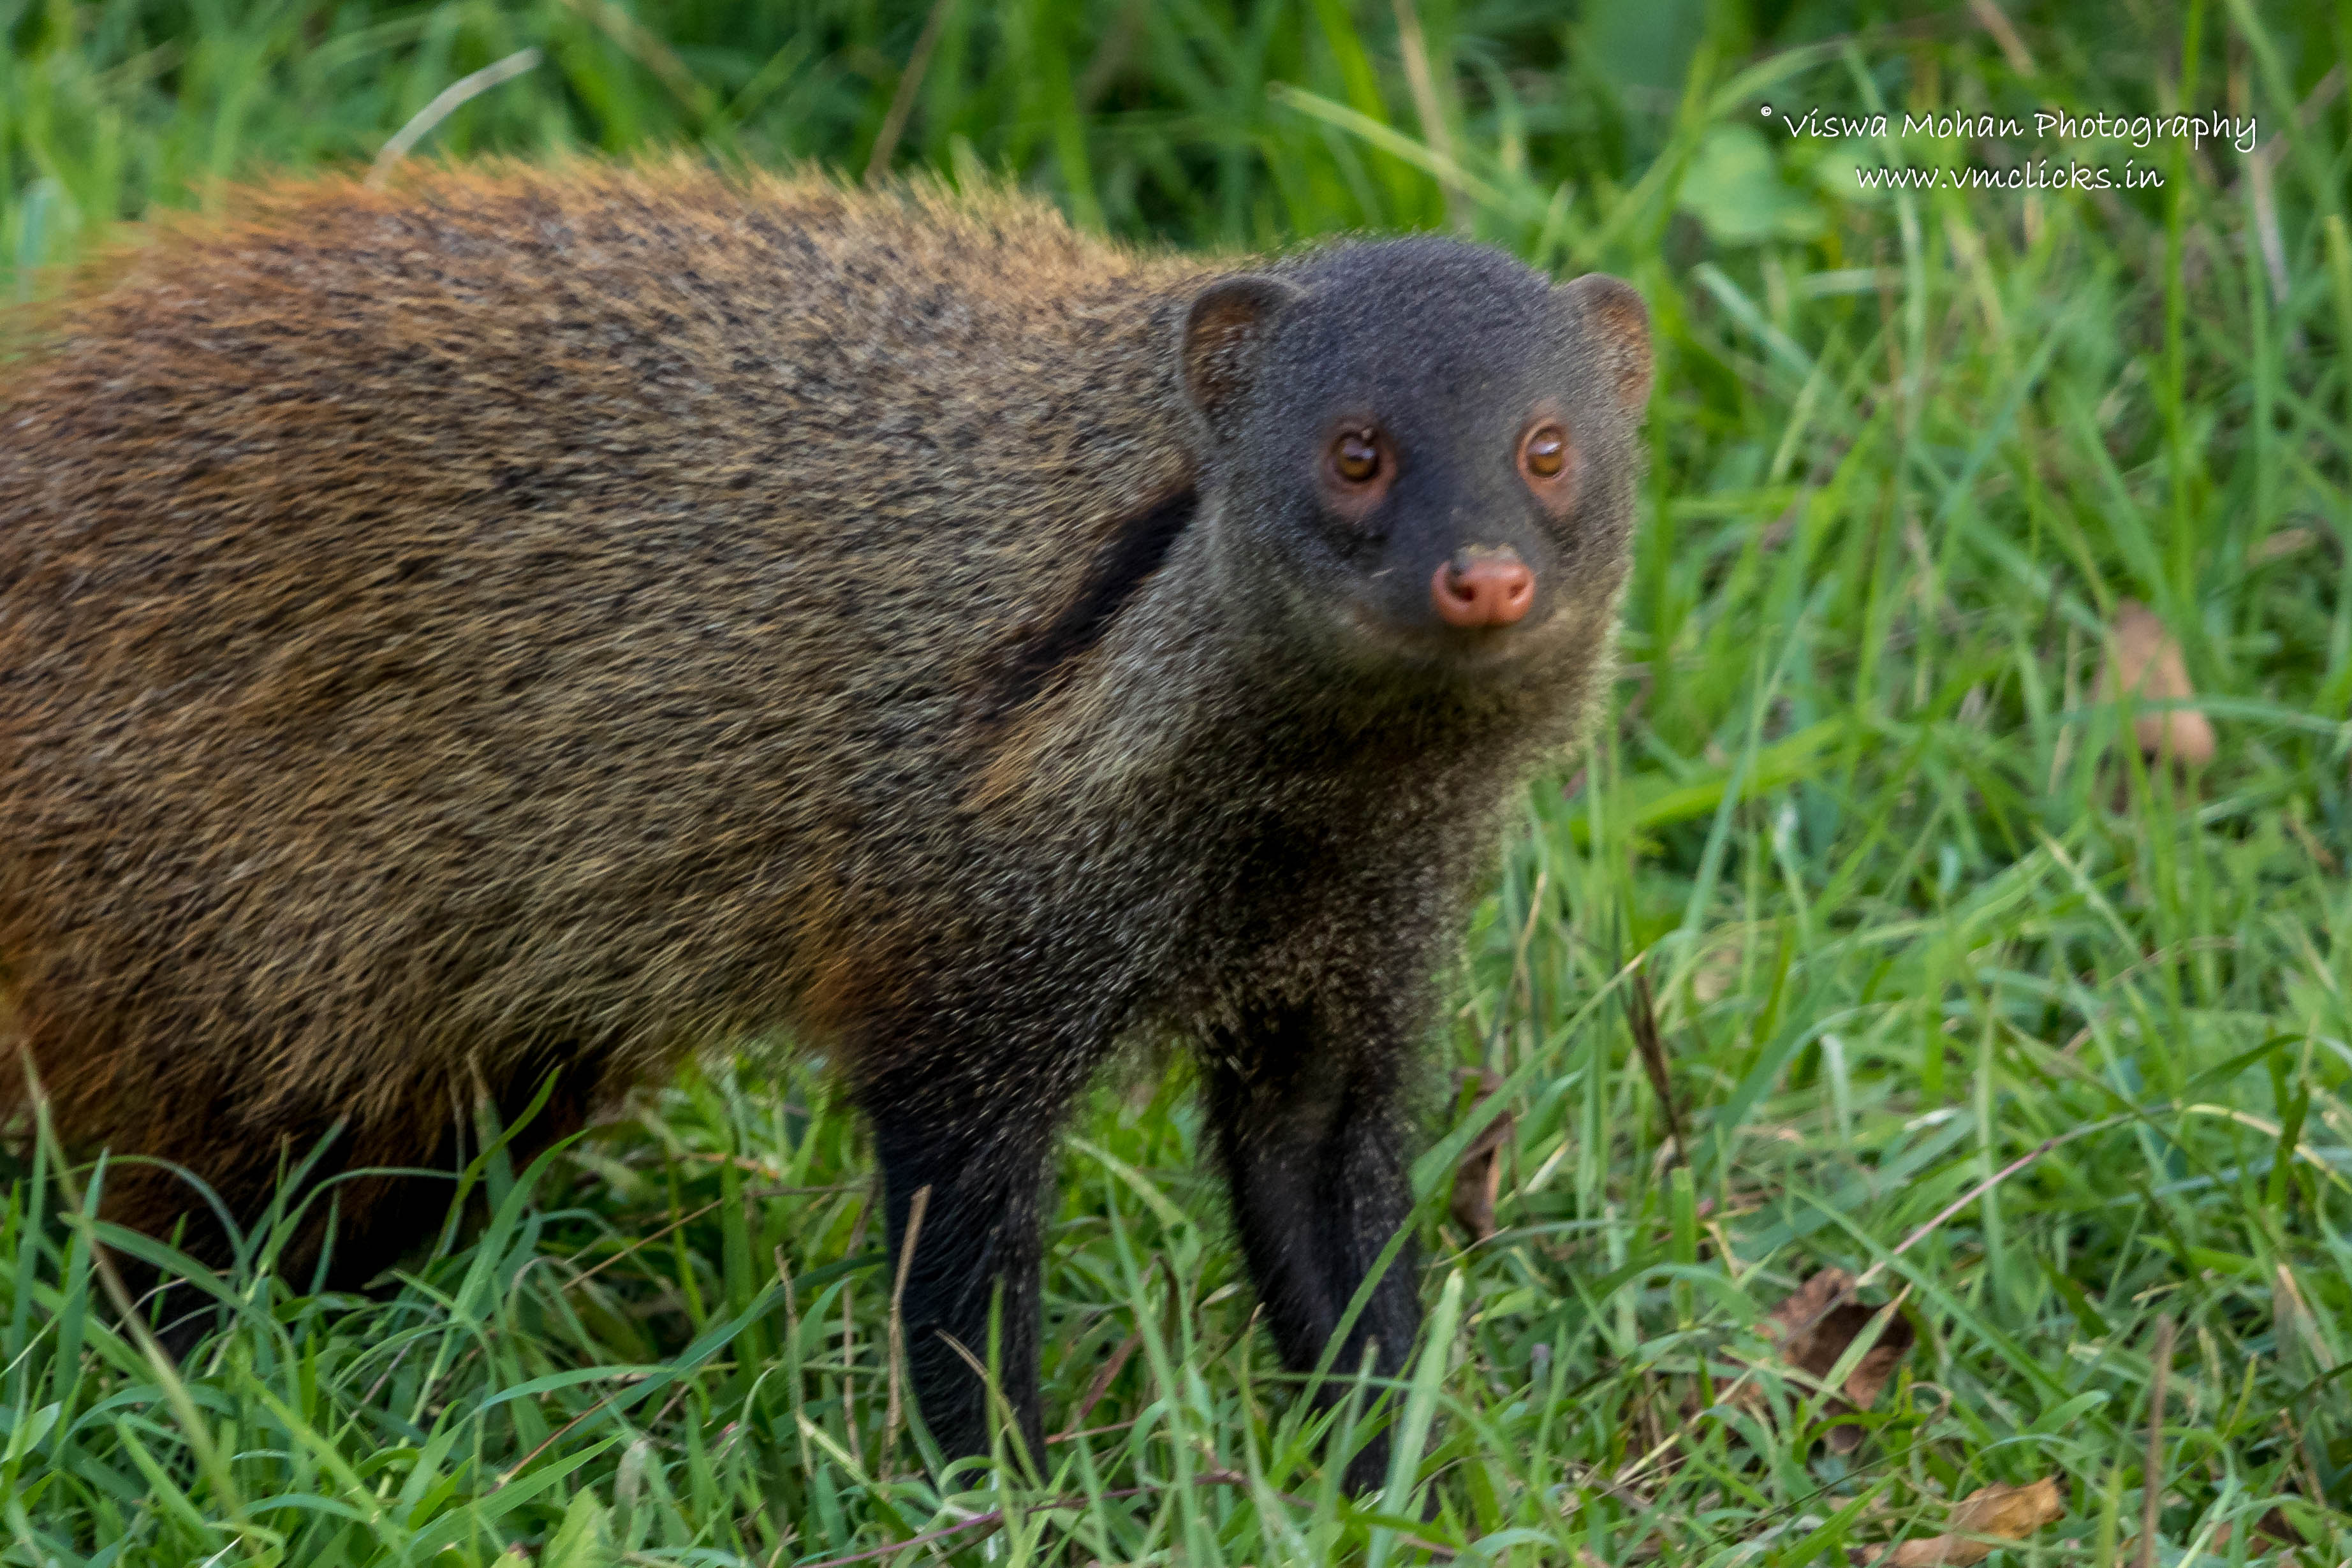 Indian Brown Mongoose Location: Bandipur Tiger Reserve